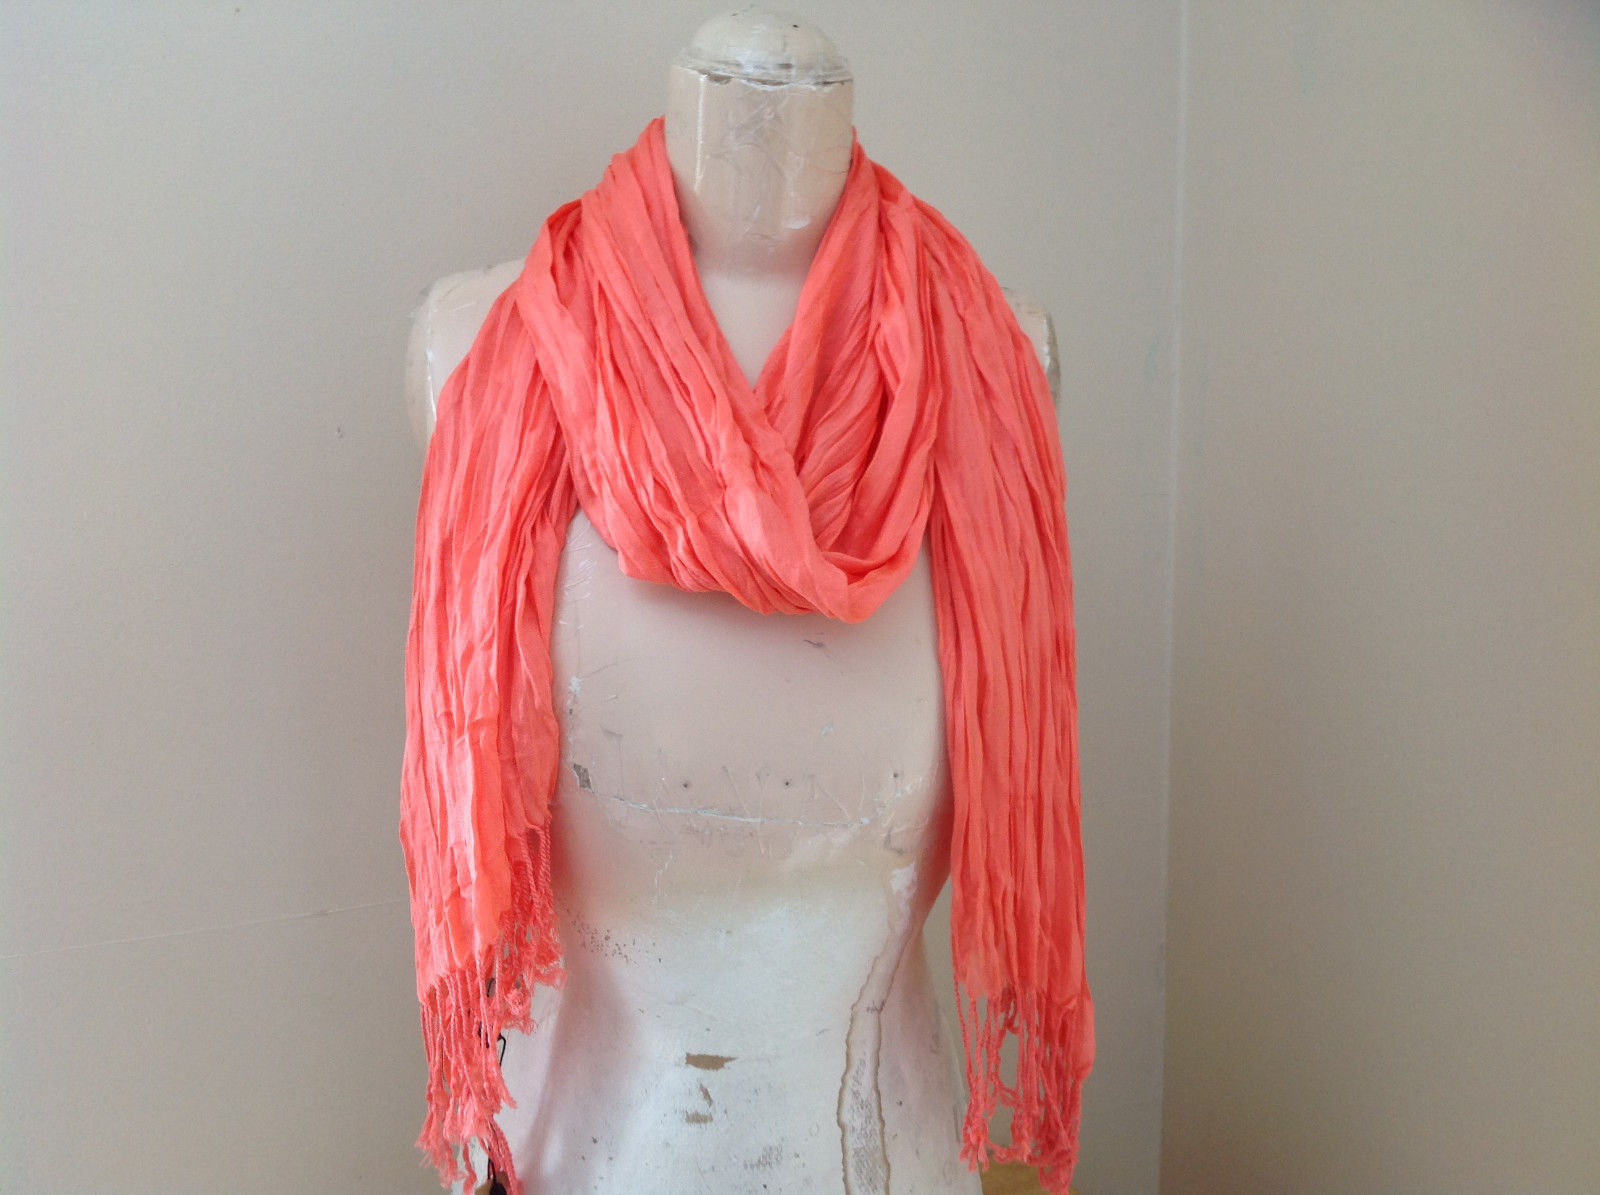 Coral Color Silk Cotton Scrunch Style Scarf with Tassels by Look Tag Attached